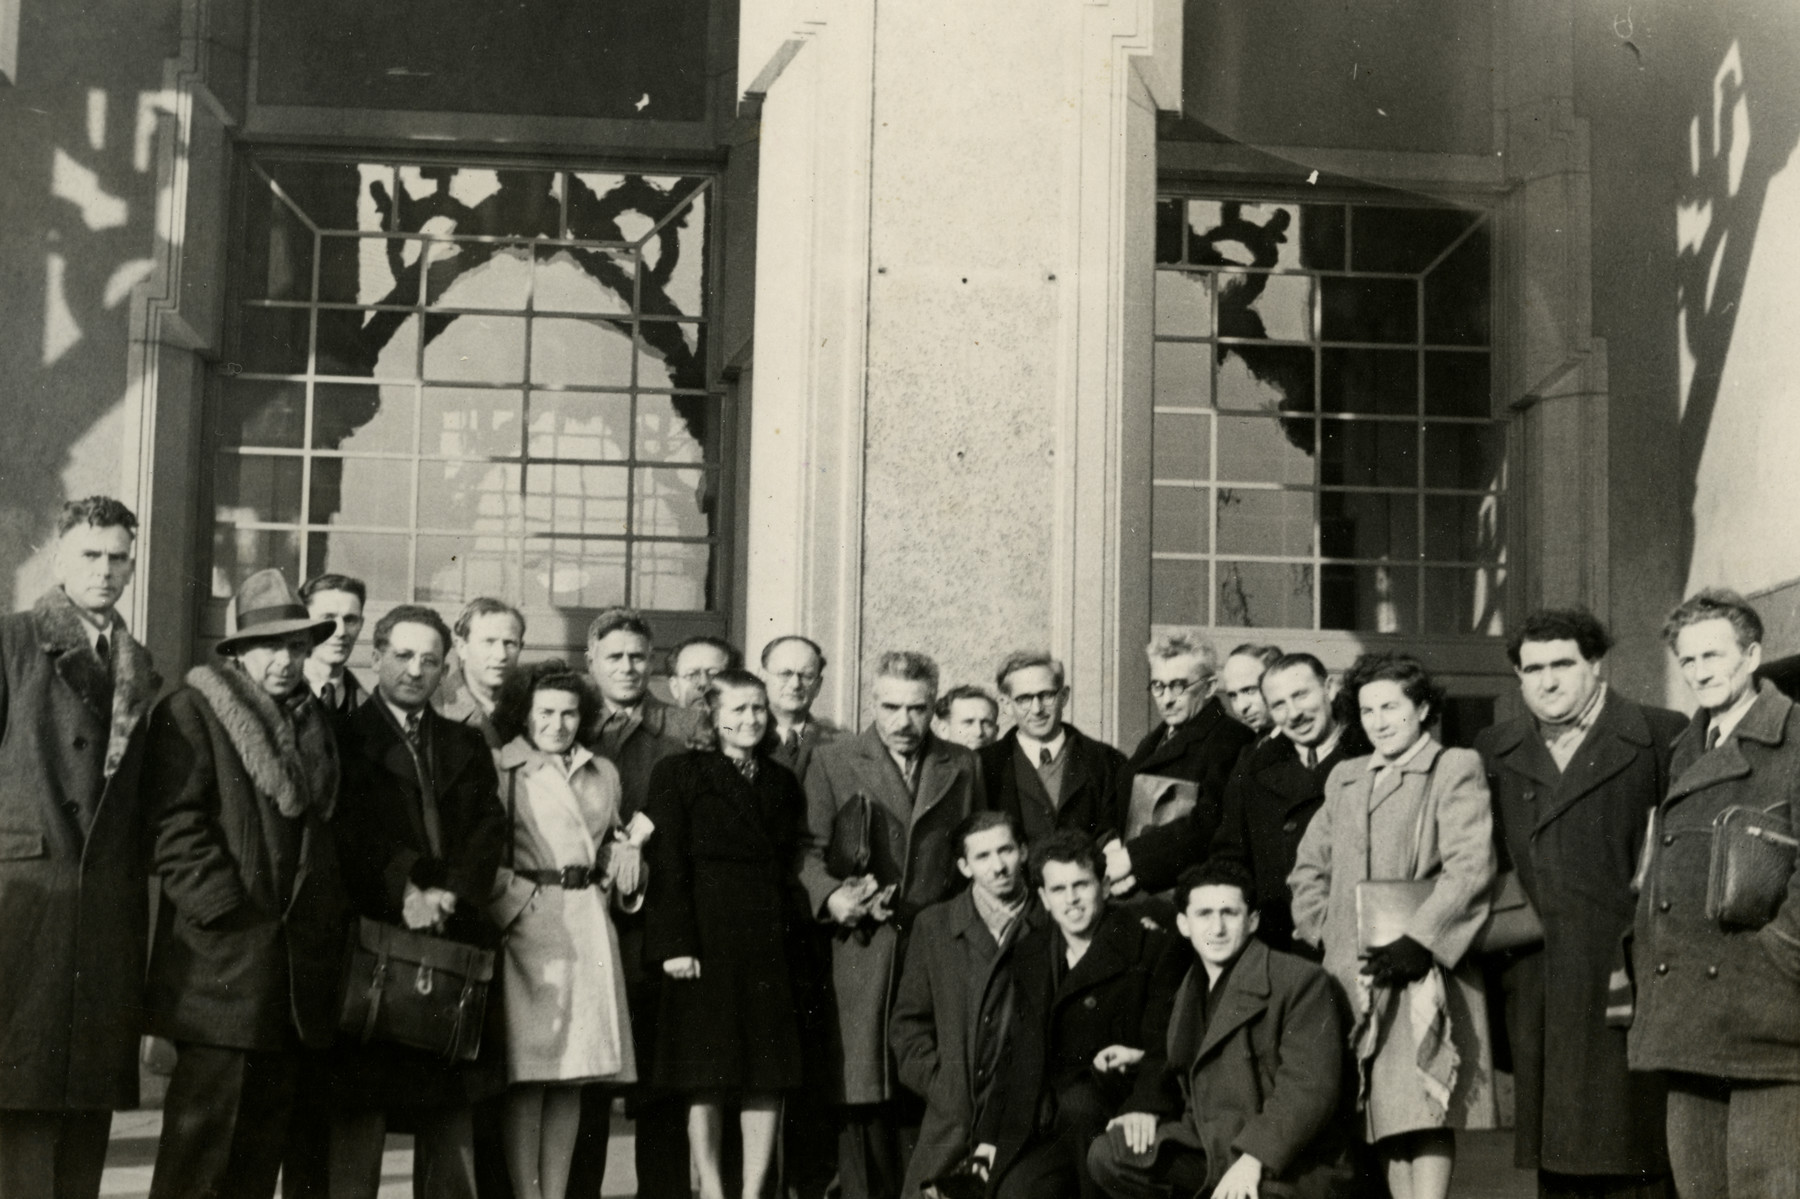 Group portrait of members of the 22nd Zionist Congress in Basel.  Among those pictures are Chana Rubin (far left), Josef Jambor (fourth from left), Haika Grosman (standing center-left in black coat), Meir Yaari (kneeling center left) and Julek Barzilai.